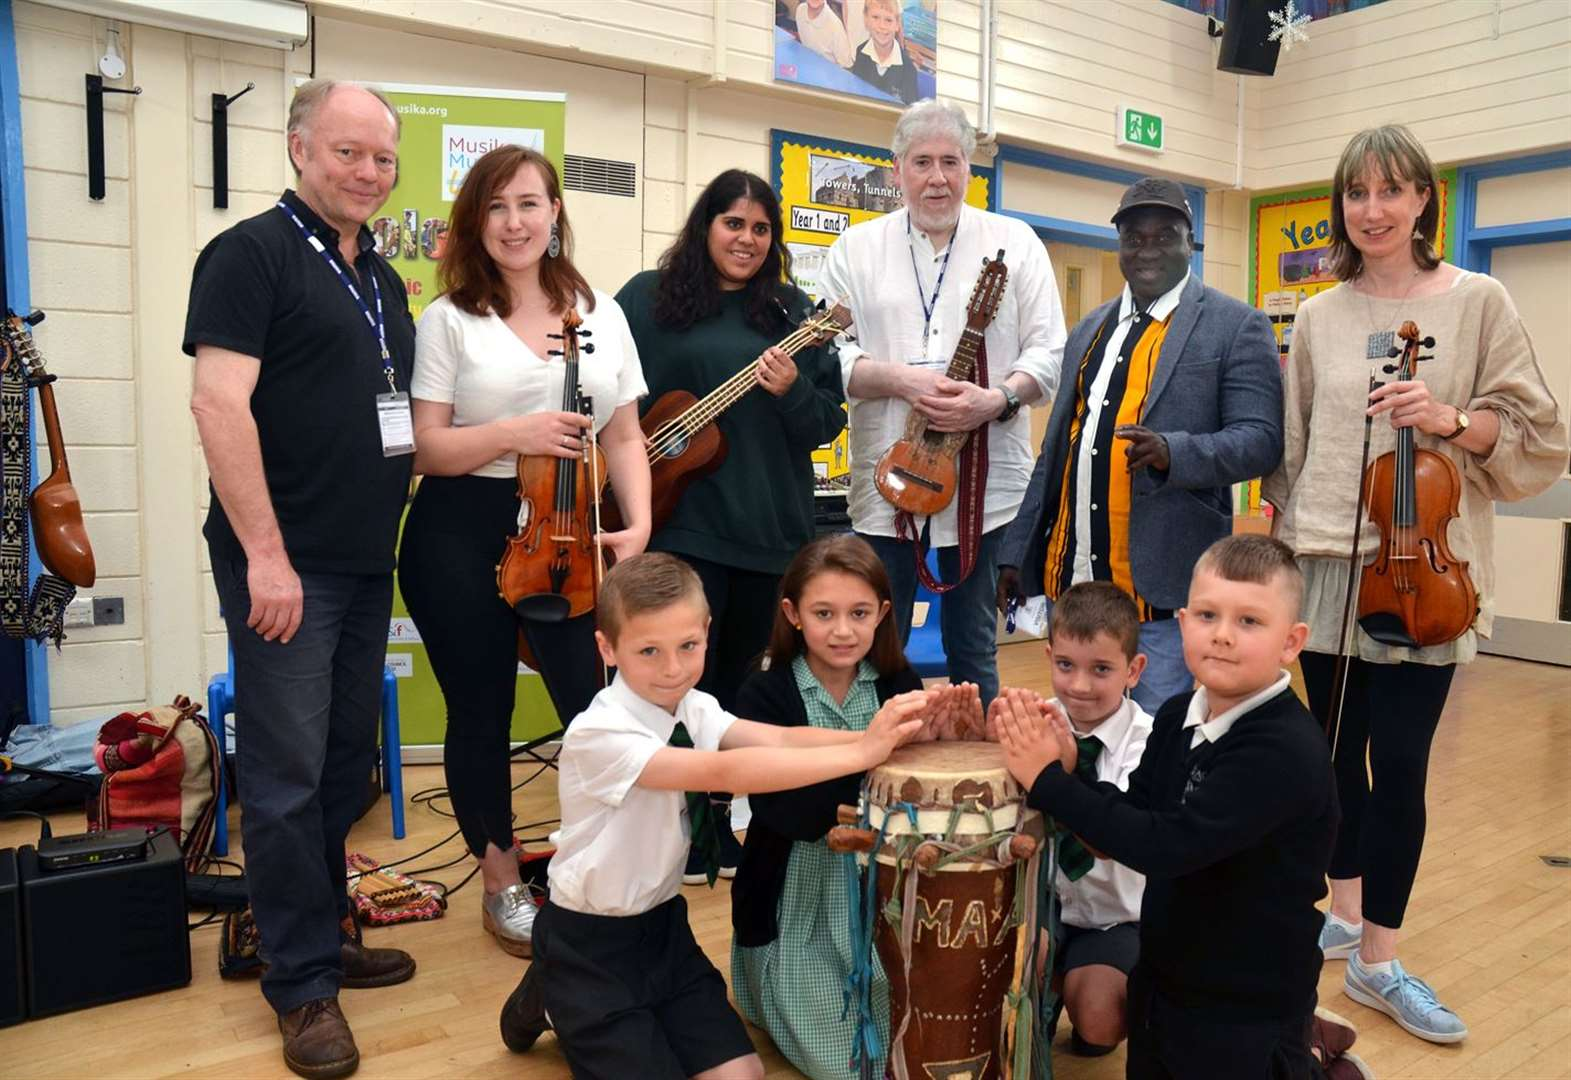 Musicians from around the world entertained young audience